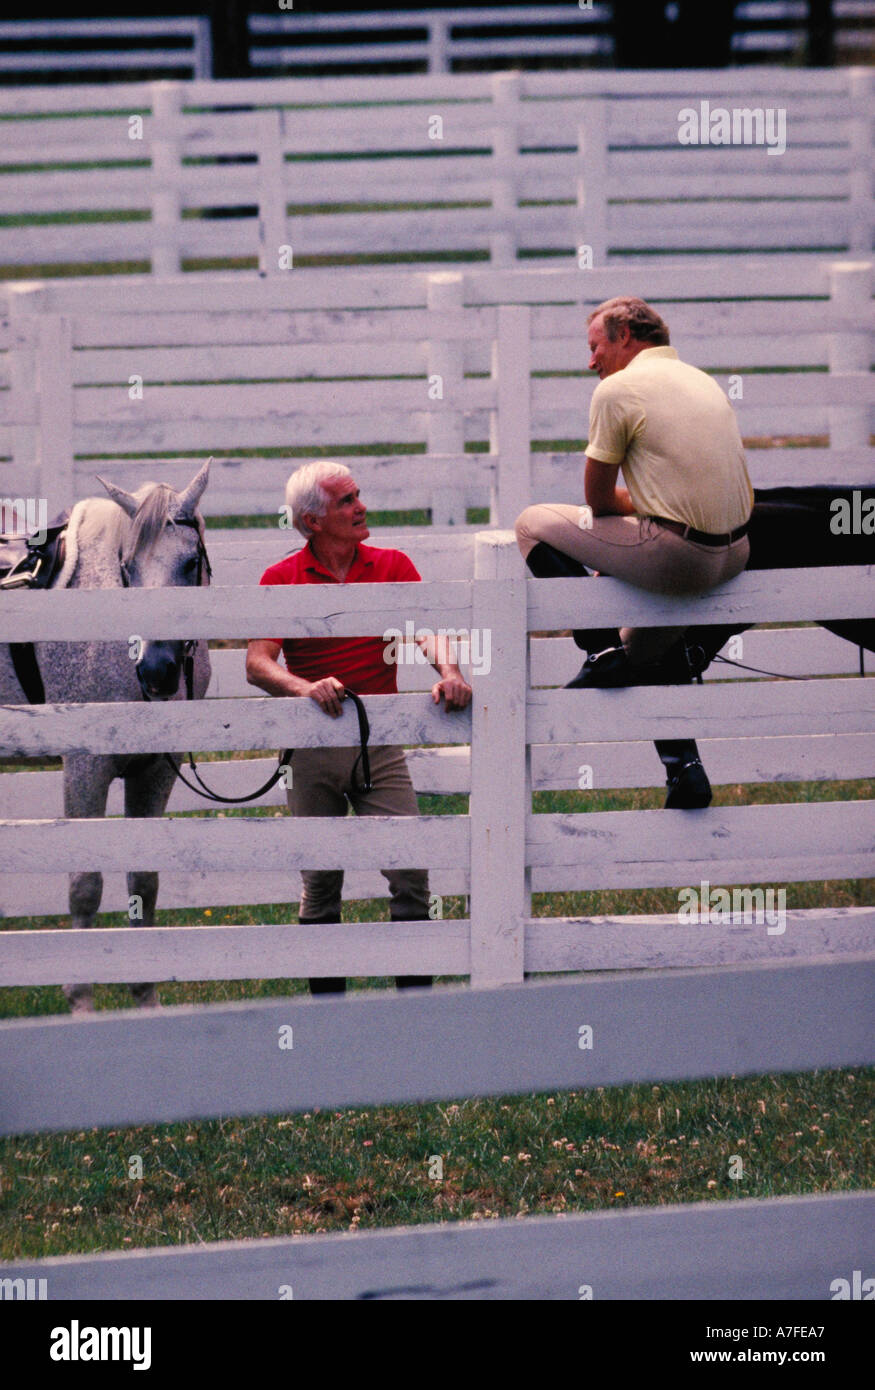 Two men with horses talking over white fence Stock Photo